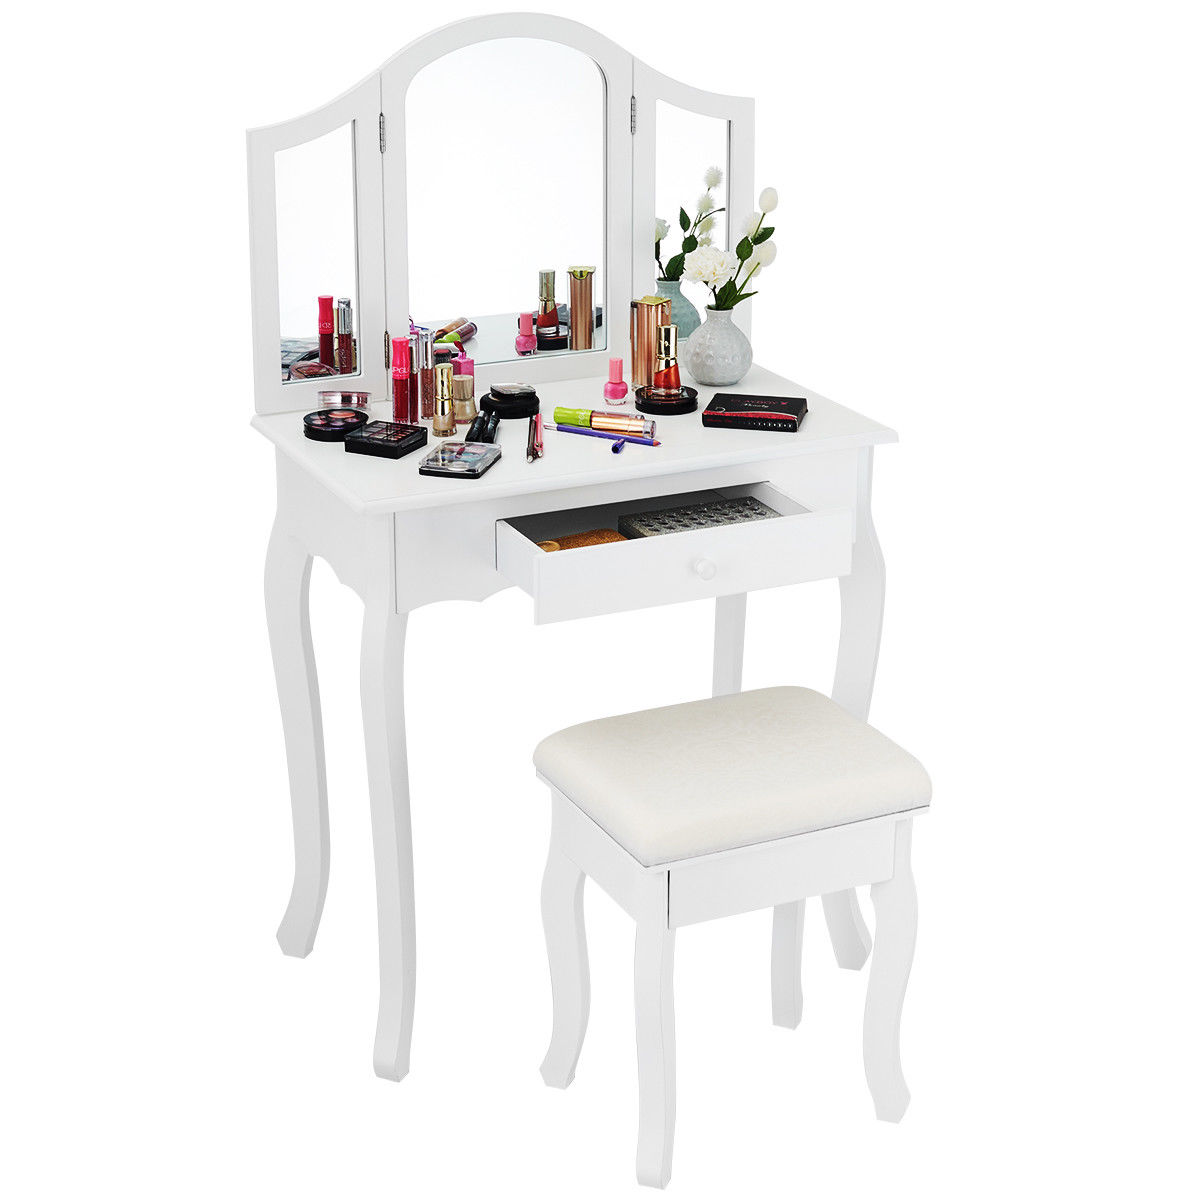 Makeup Table Chair Costway White Tri Folding Mirror Vanity Makeup Table Set Bathroom W Stool Drawers